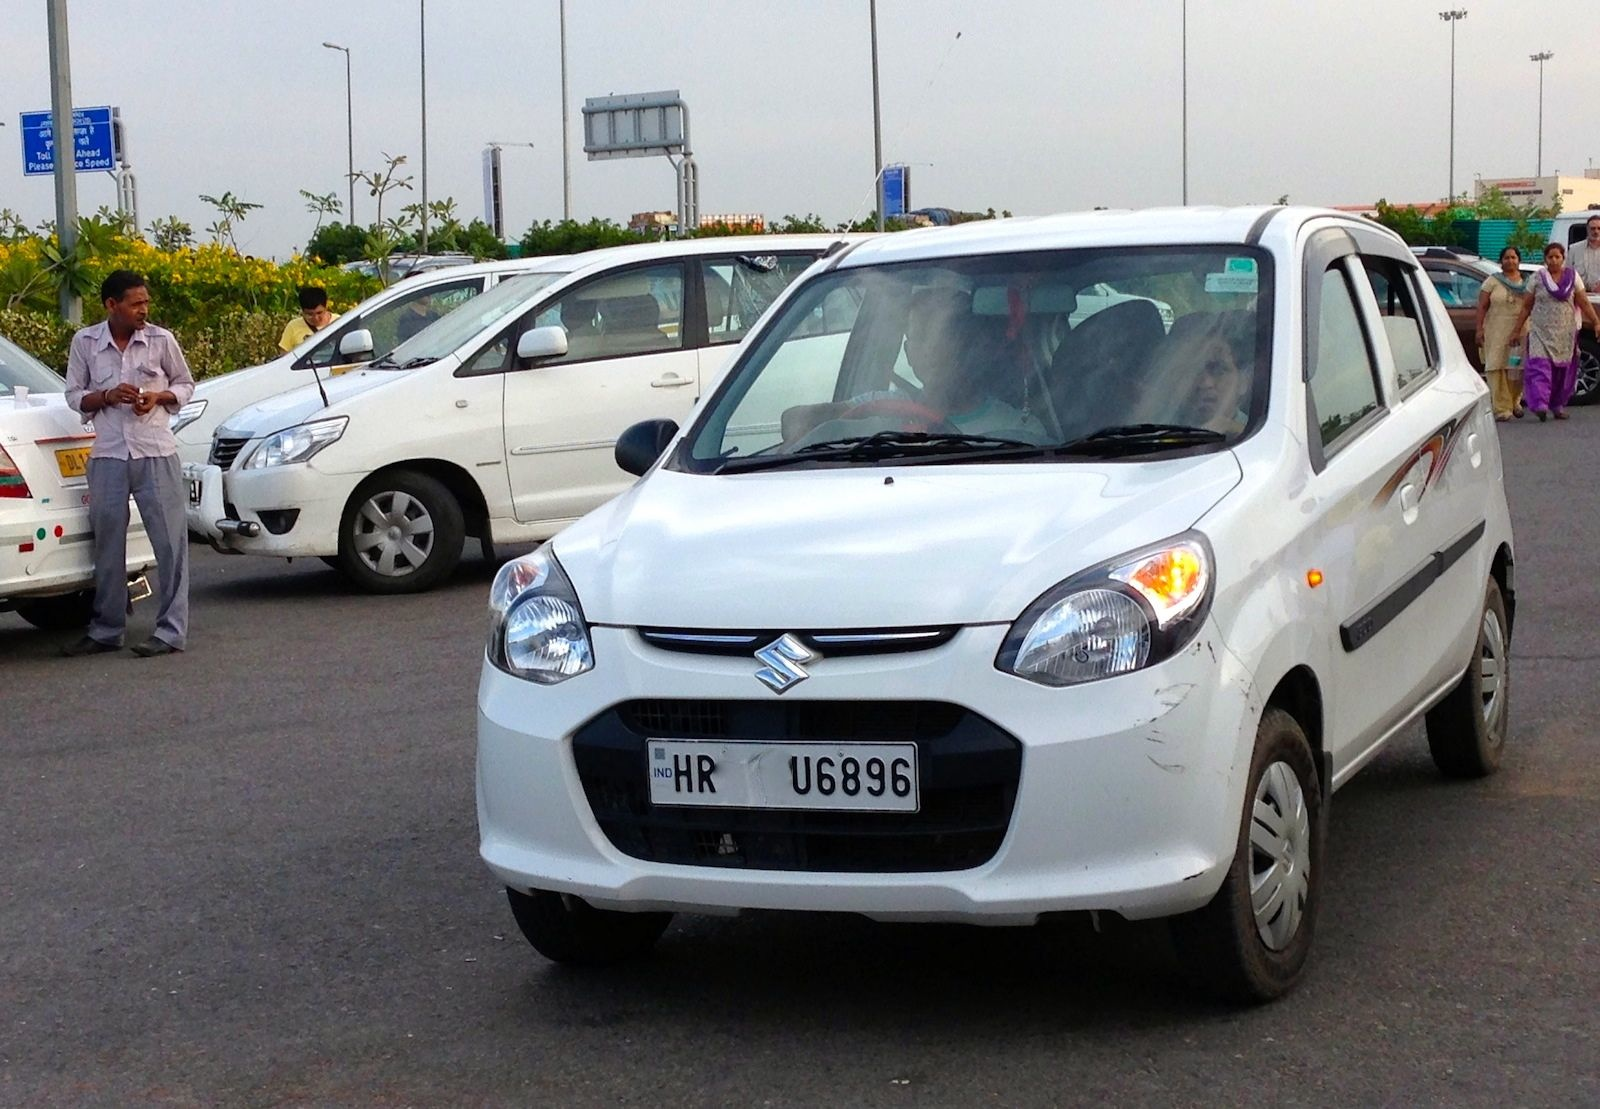 Best Mpv Car In India >> Best Selling Cars Around The Globe: Understanding The Indian Car Market - The Truth About Cars